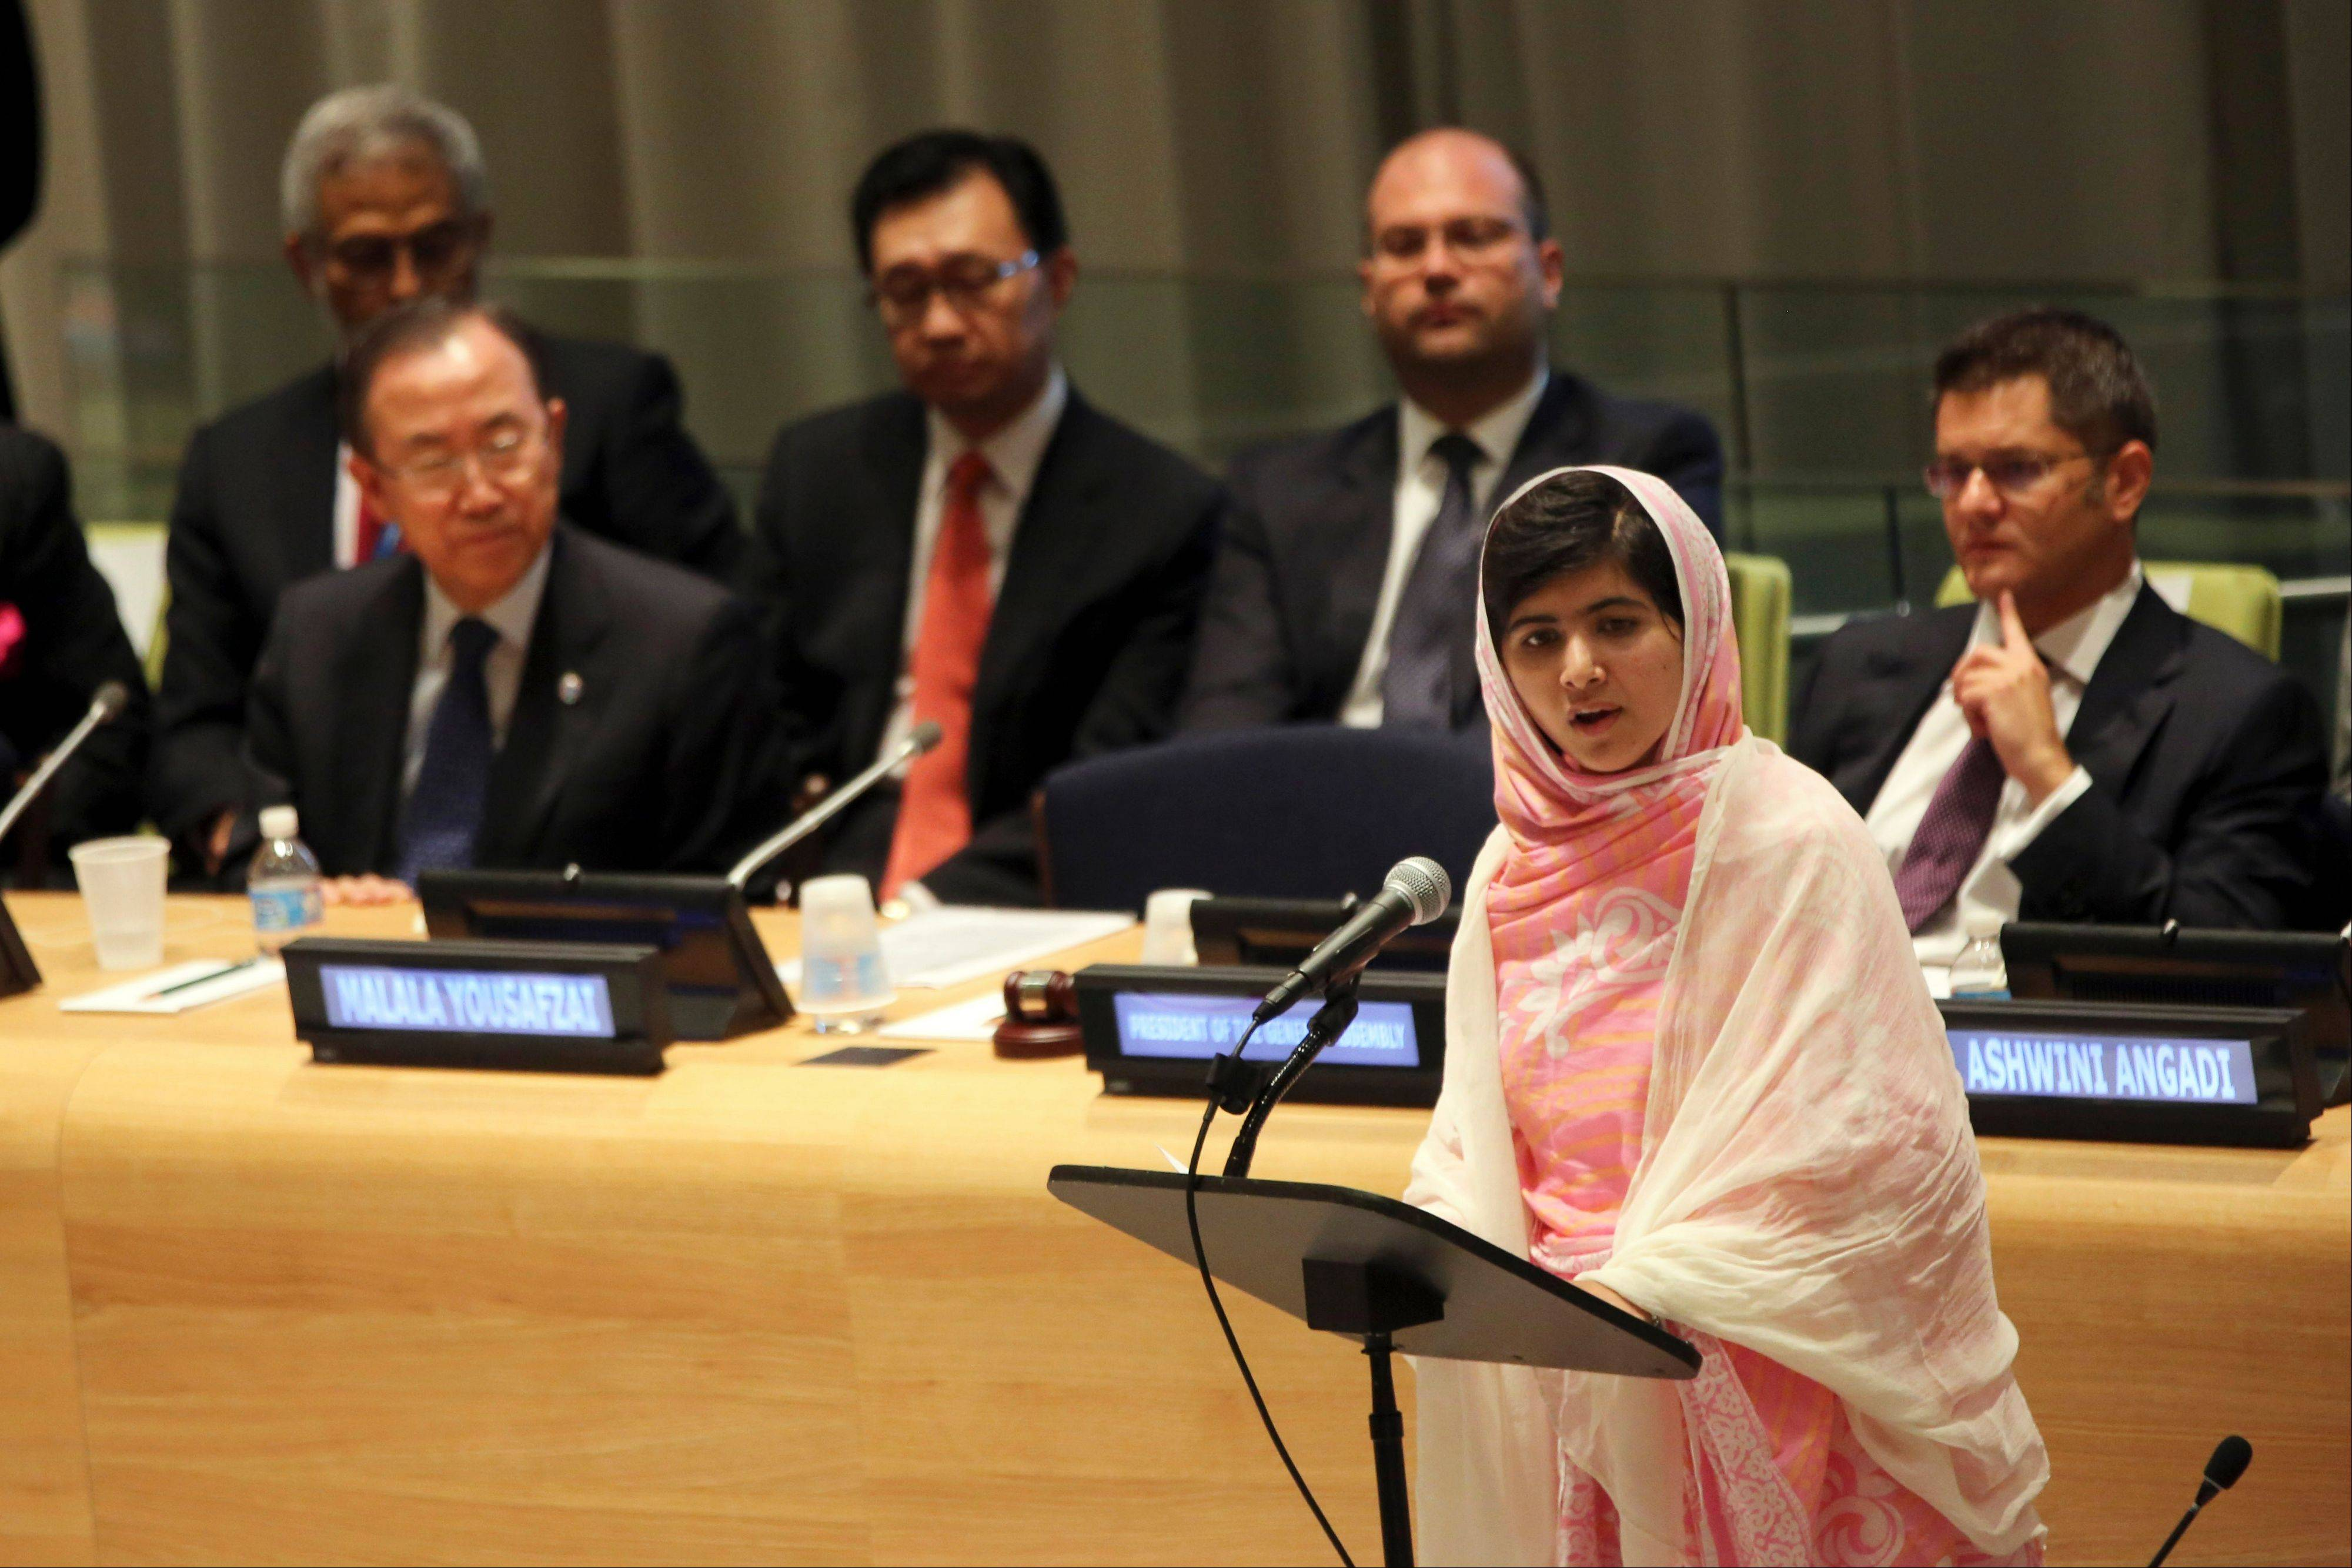 United Nations Secretary-General Ban Ki-moon, left, listens as Malala Yousafzai, right, addresses the Malala Day Youth Assembly July 12 at United Nations headquarters. Malala Yousafzai, the Pakistani teenager shot by the Taliban for promoting education for girls, was at Harvard on Friday, Sept. 27, to accept the 2013 Peter J. Gomes Humanitarian Award.